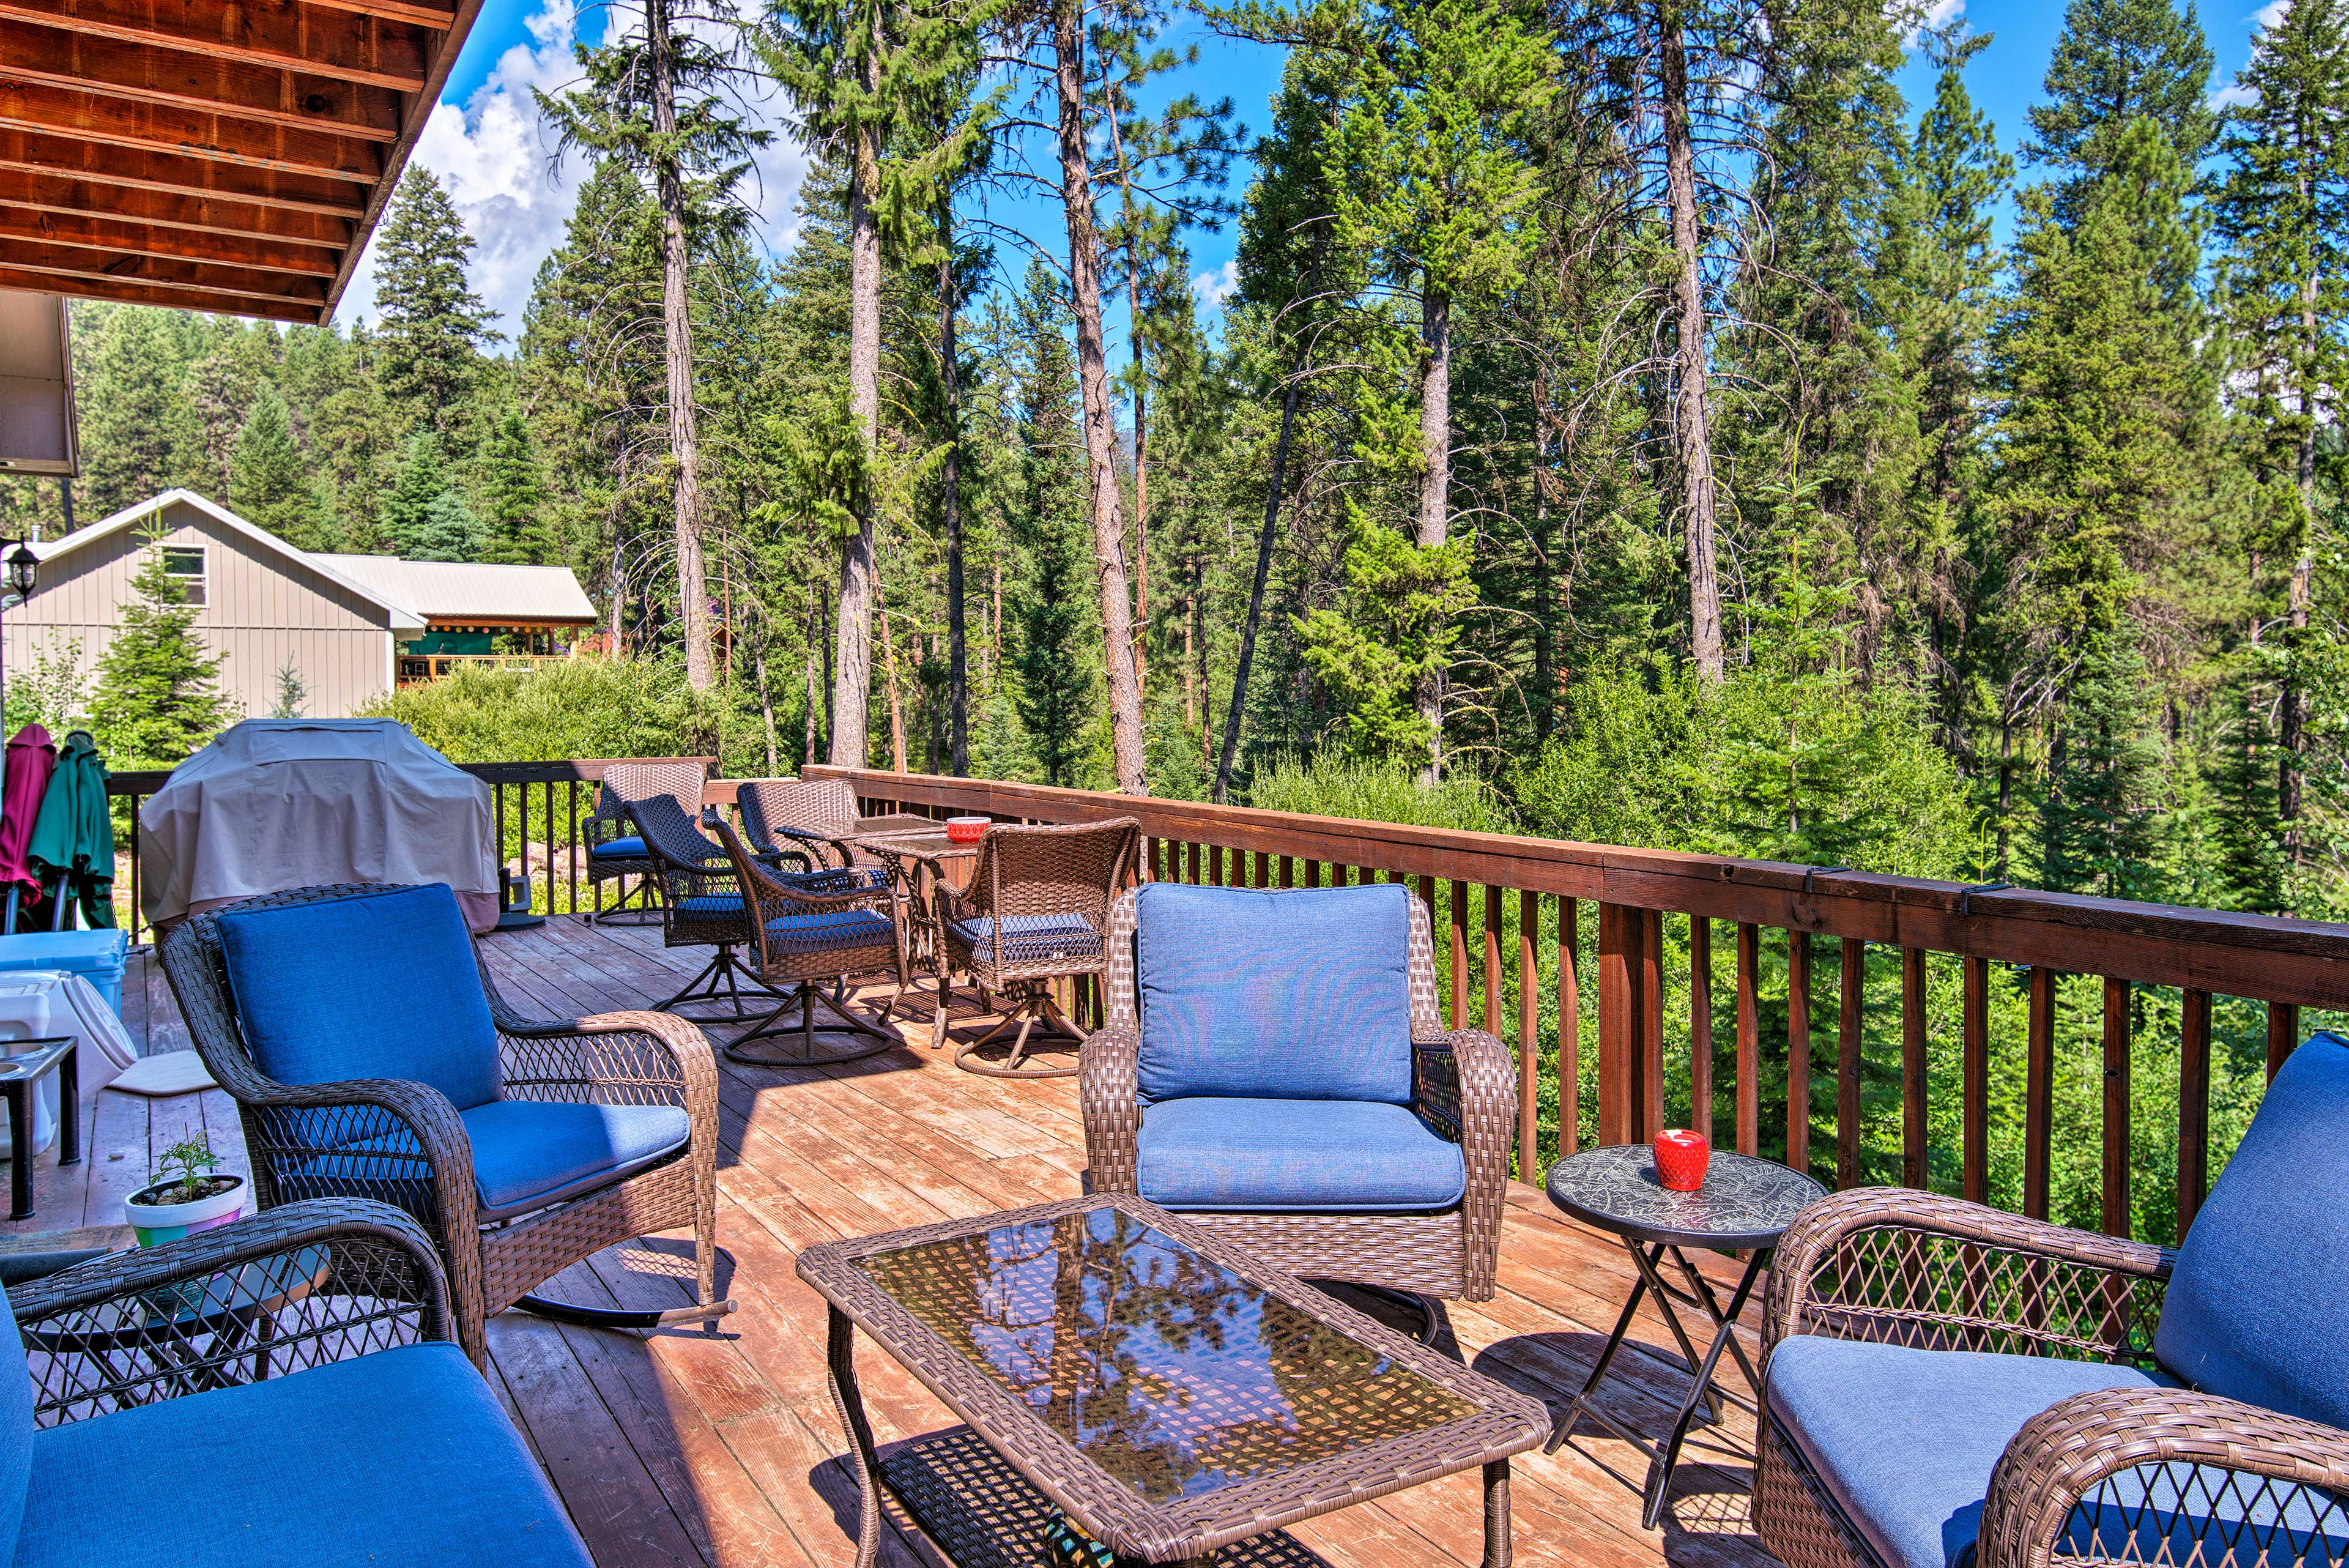 The expansive lower-level deck is perfect for outdoor relaxation.